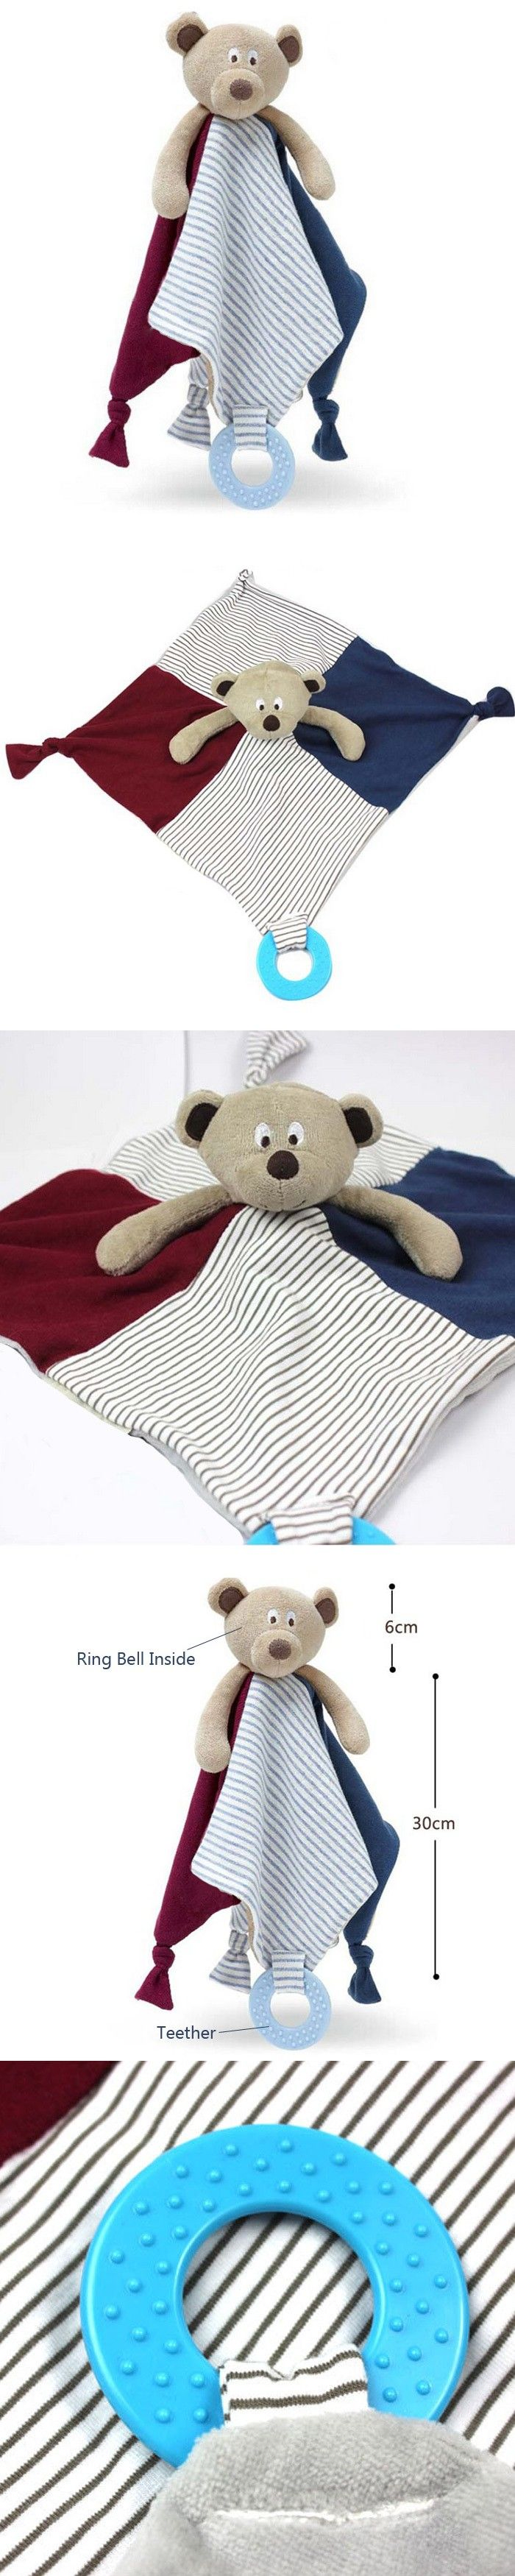 New Baby Comforter Toy Teether Cute Cartoon Bear Soft Plush Rattle Ring Bell Multifunctional